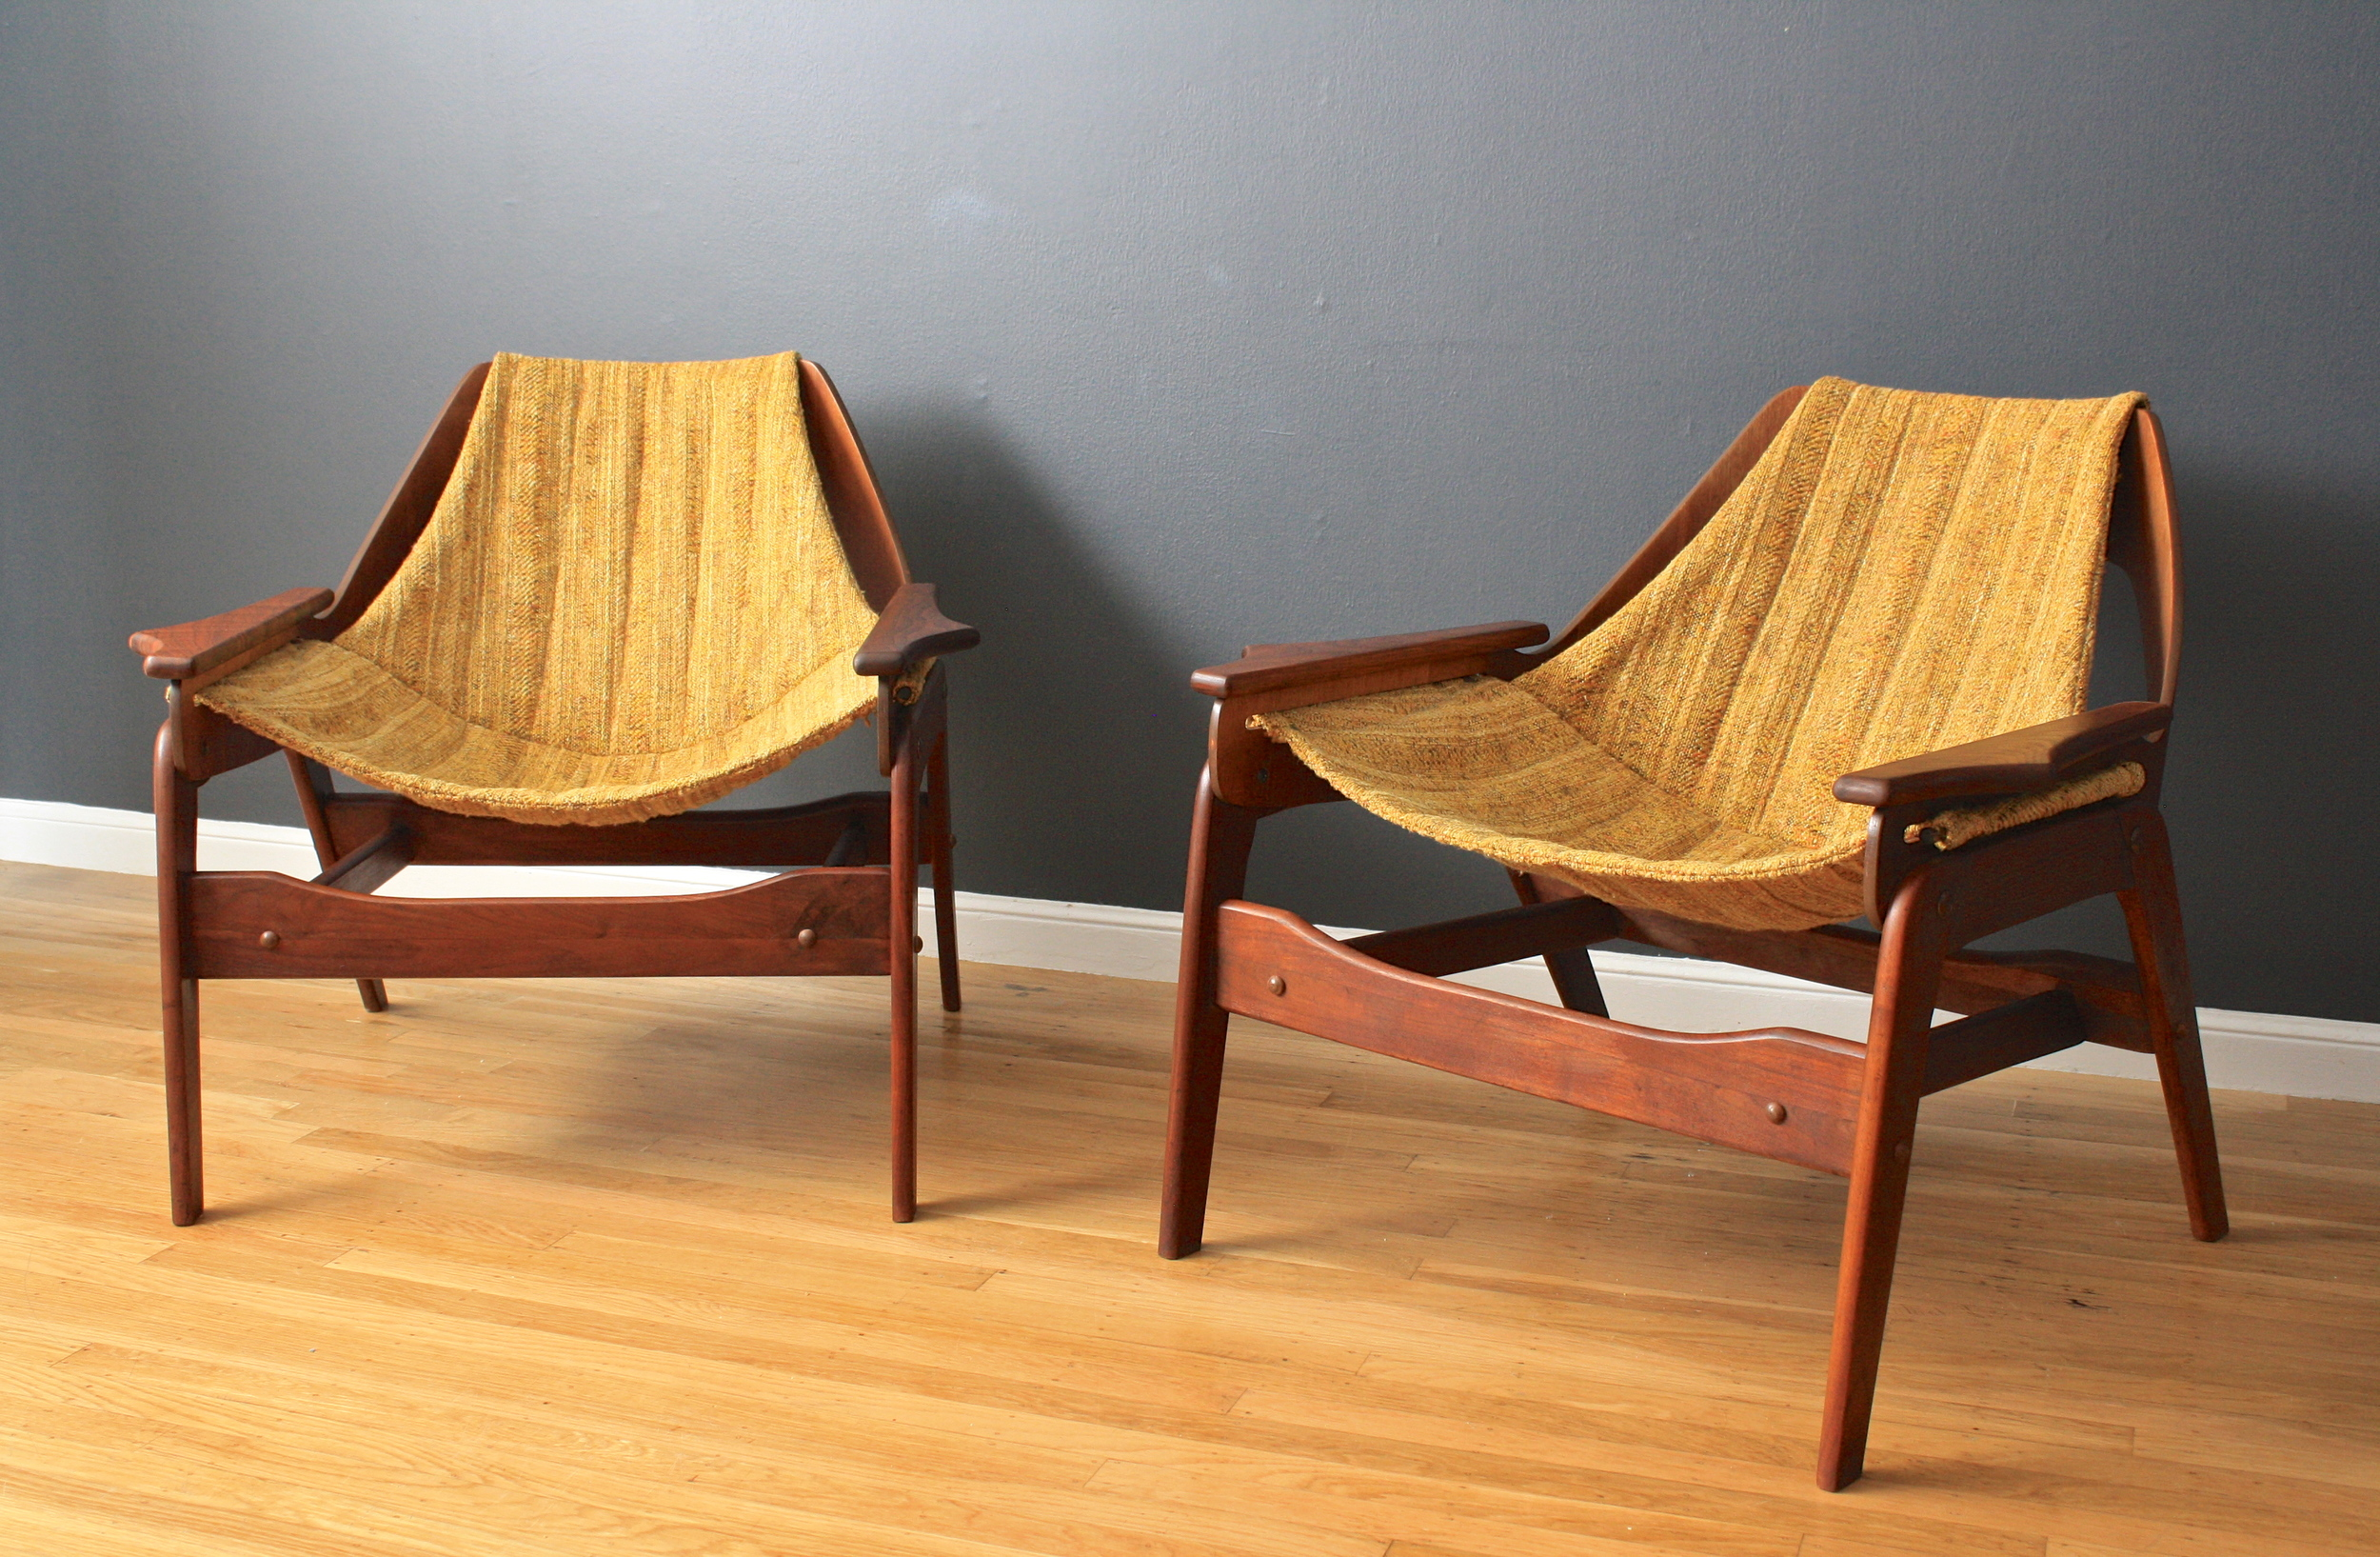 Pair of Mid-Century Modern Lounge Chairs by Jerry Johnson